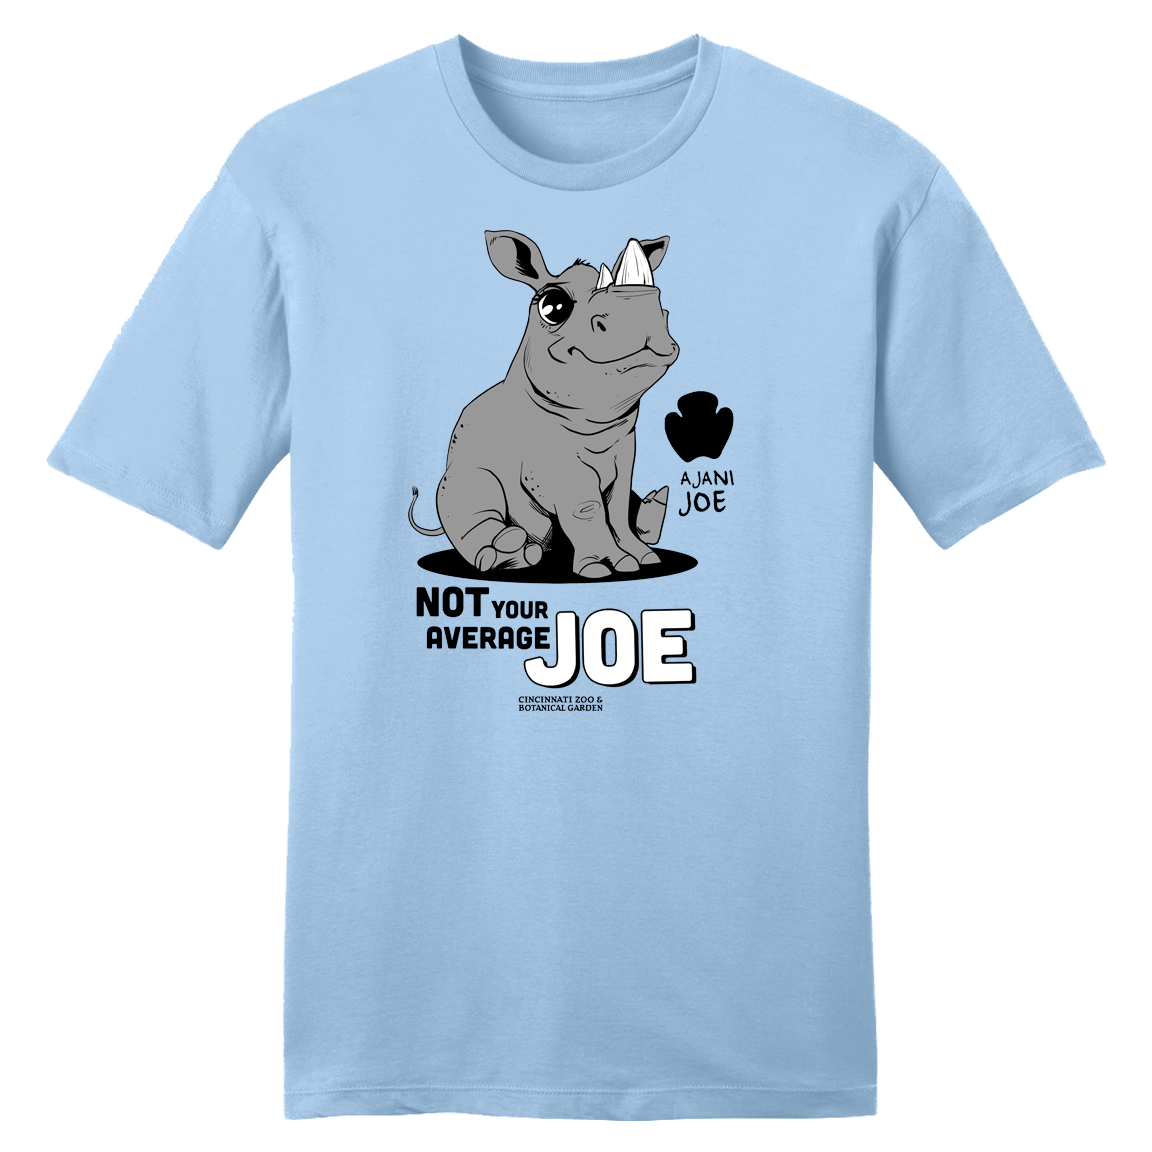 "Not Your Average Joe ""Ajani Joe"" - Cincy Shirts"